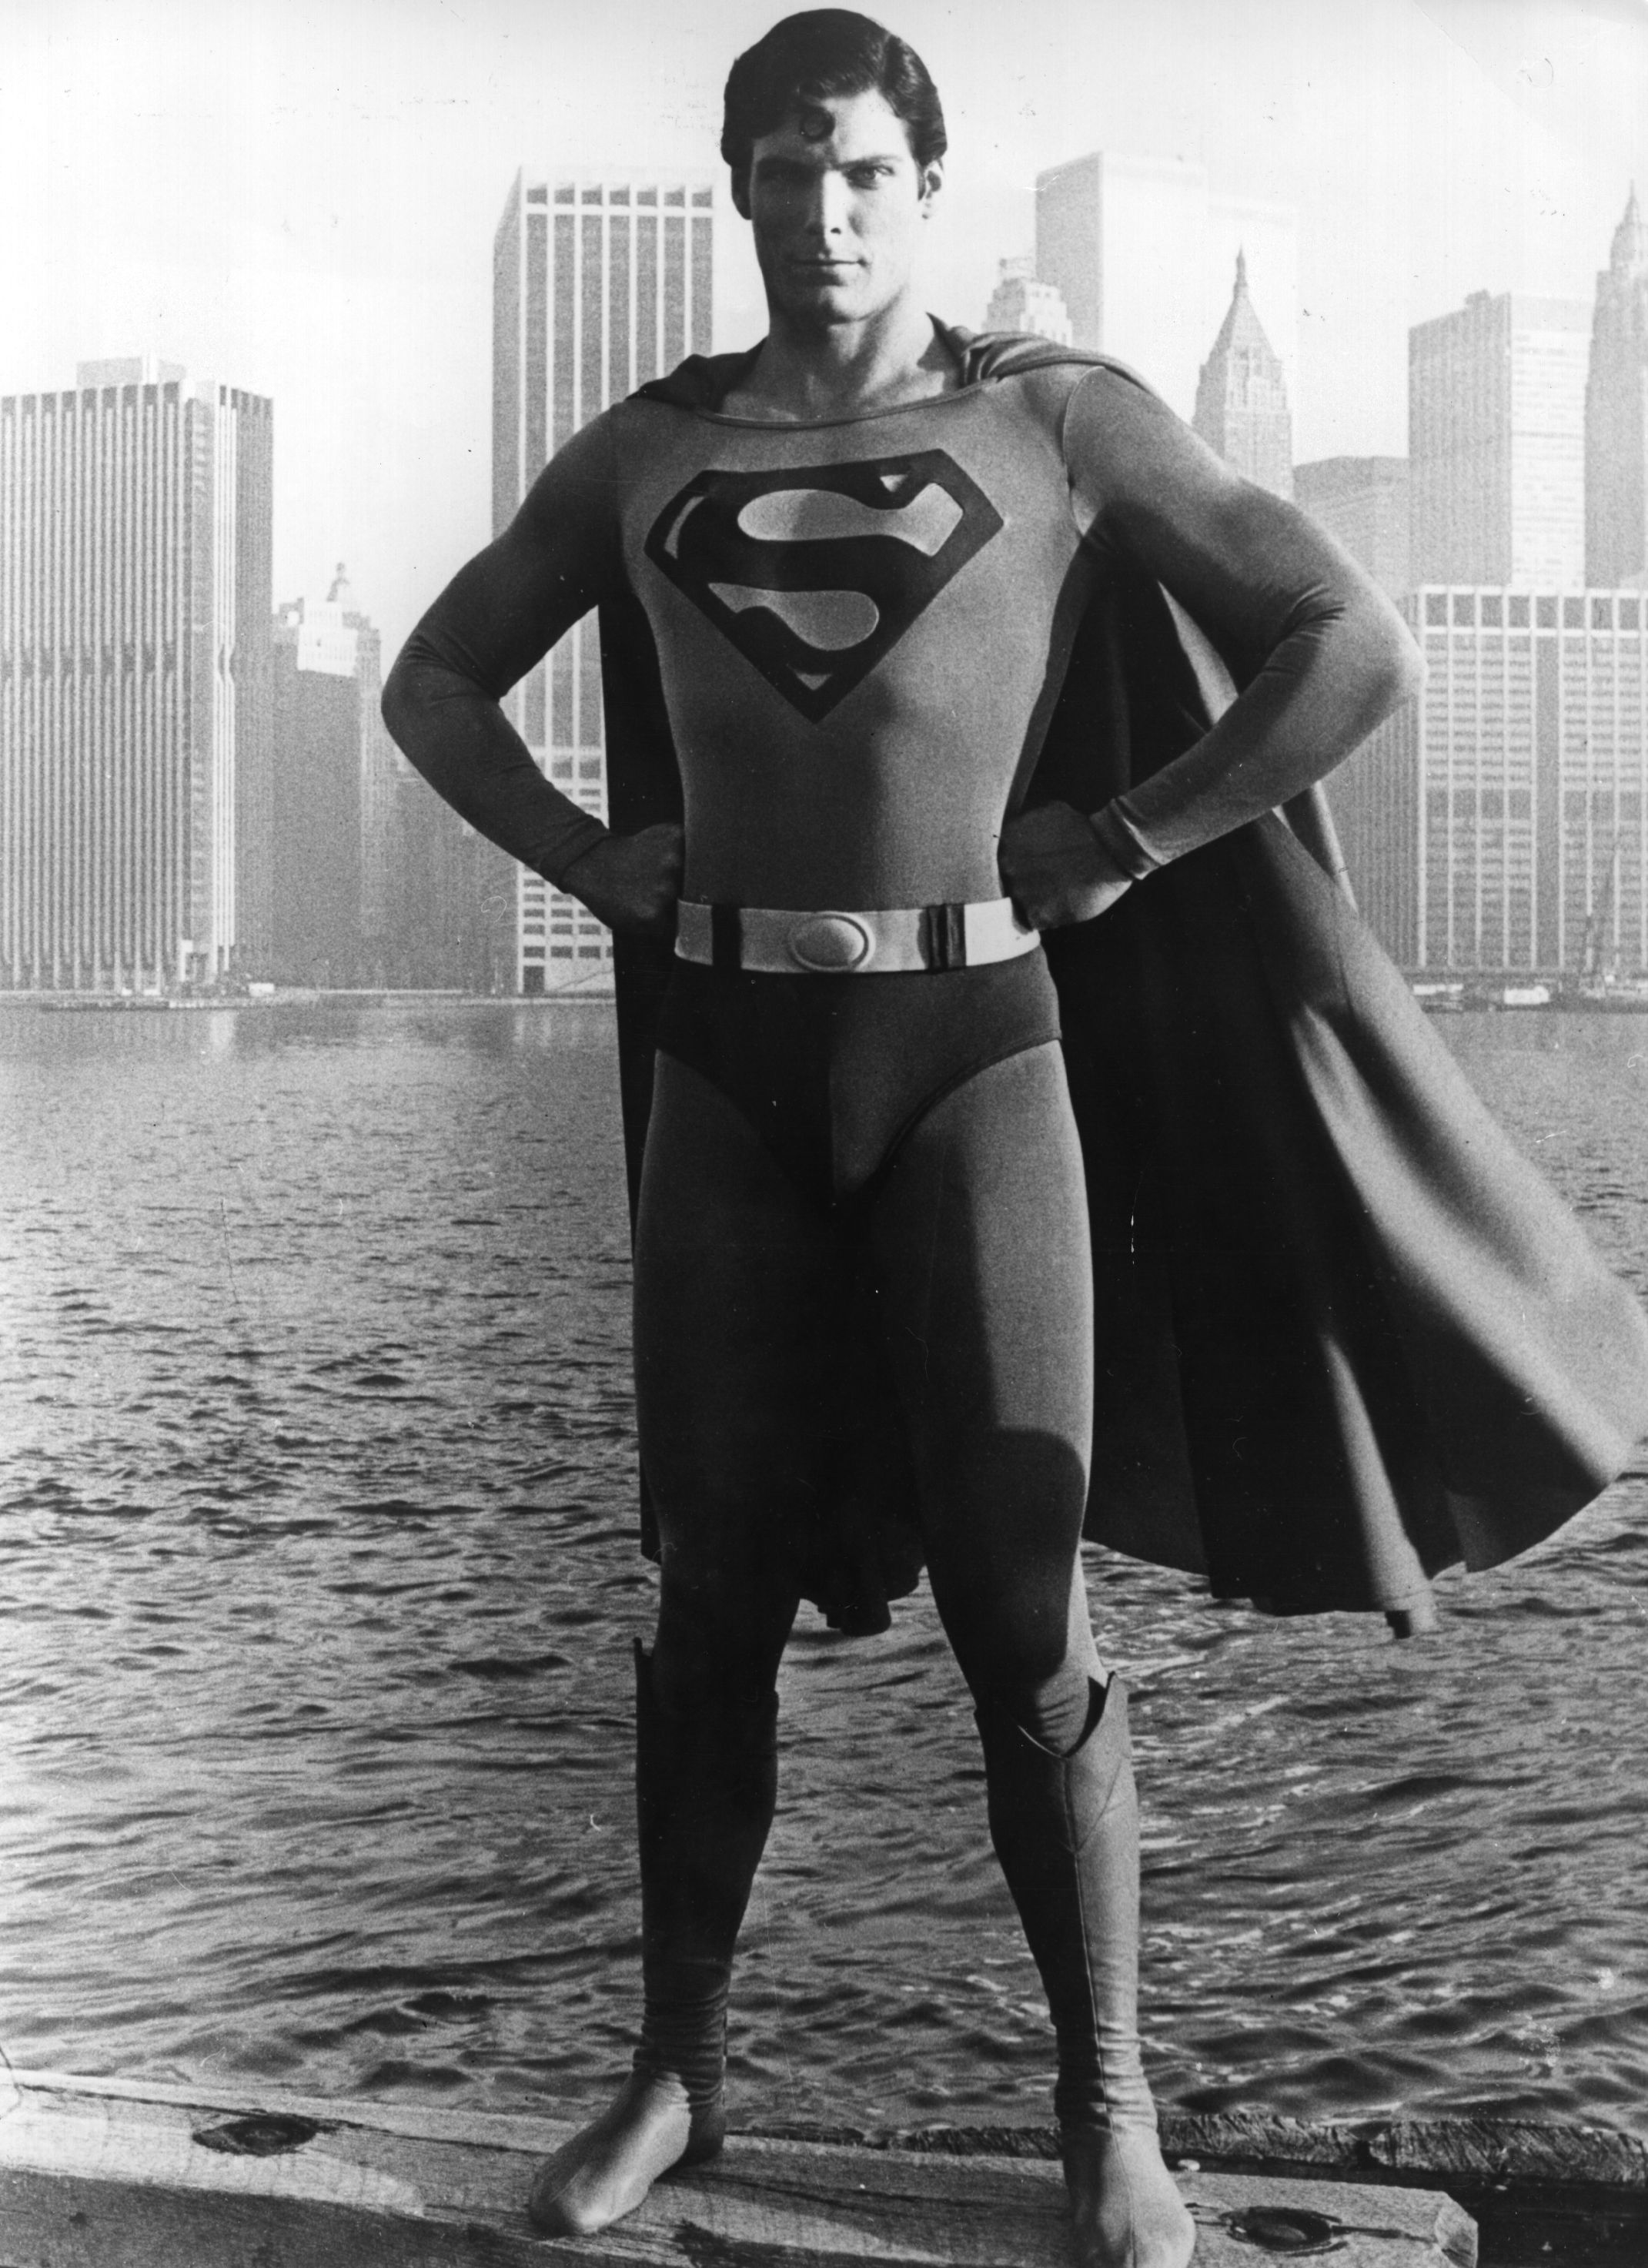 24-year-old American film actor Christopher Reeve stands before the Manhattan skyline dressed as the comic-book hero of the film 'Superman'. (Photo by Keystone/Getty Images)